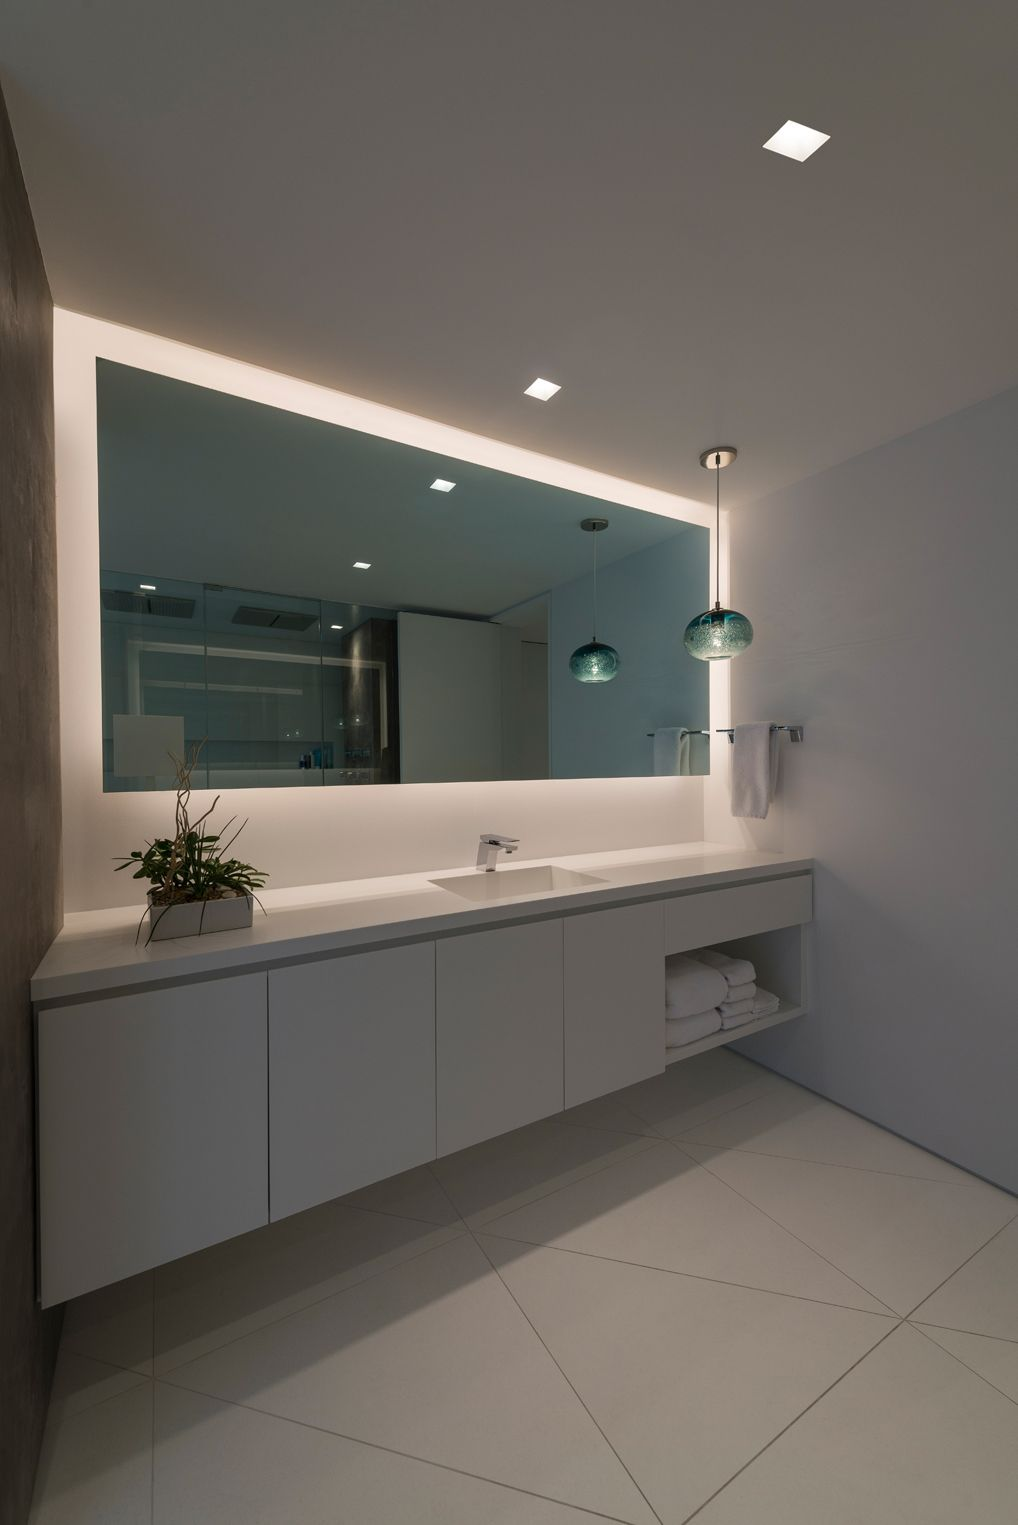 bathroom mirror lighting ideas. Browse A Large Selection Of Bathroom Vanity Mirror Designs, Including Frameless, Beveled And Lighted Wall Mirrors In All Shapes . Lighting Ideas H